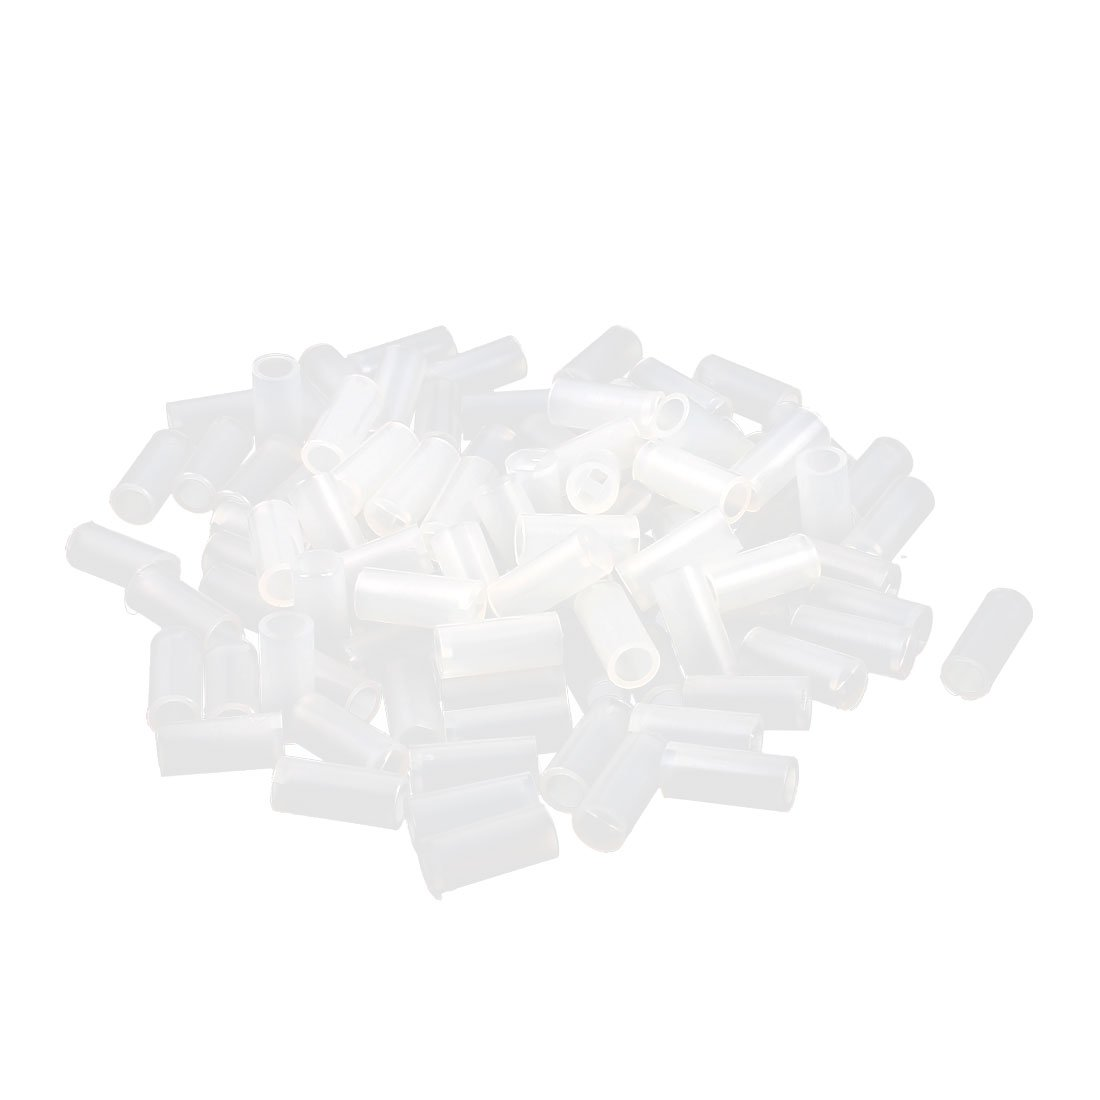 uxcell 100 Pcs Nylon Cylinder LED Spacer Holder Support 3mm x 9mm Clear